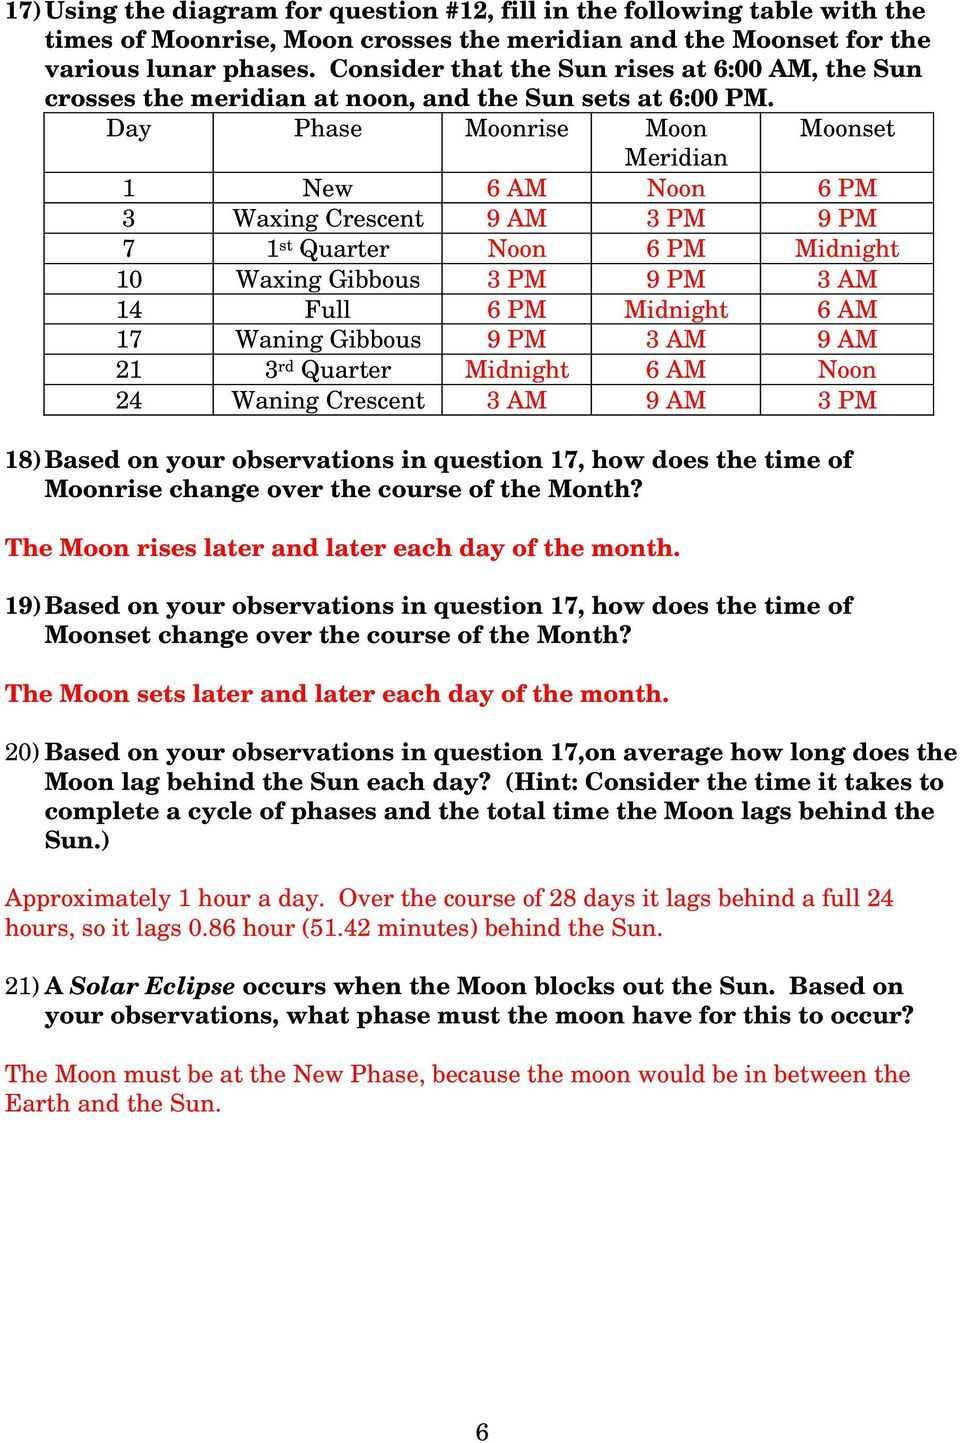 Day Phase Moonrise Moon Moonset Meridian 1 New 6 AM Noon 6 PM 3 Waxing Crescent 9 AM 3 PM 9 PM 7 1 st Quarter Noon 6 PM Midnight 10 Waxing Gibbous 3 PM 9 PM 3 AM 14 Full 6 PM Midnight 6 AM 17 Waning